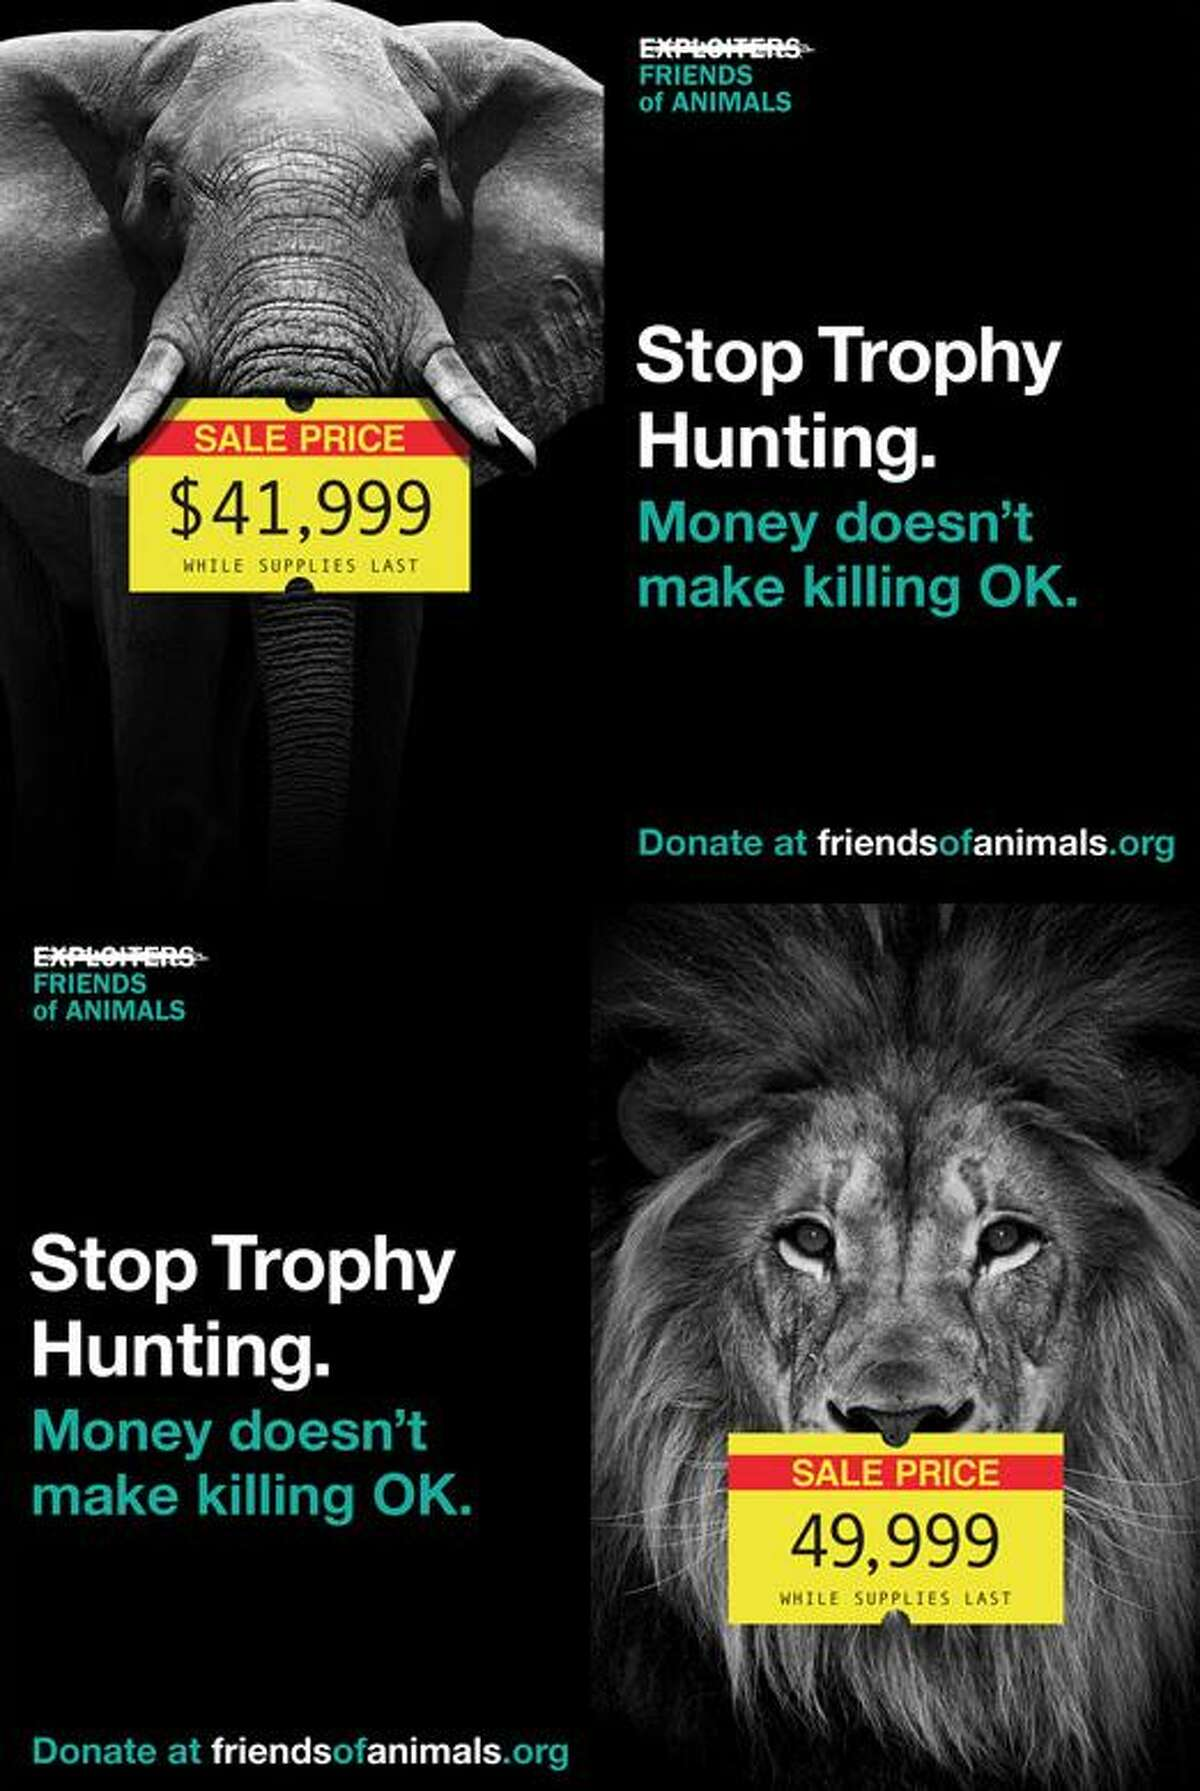 An image from Friends of Animals' anti-trophy hunting campaign, released on Dec. 13, 2016. Friends of Animals is based out of Darien, CT.